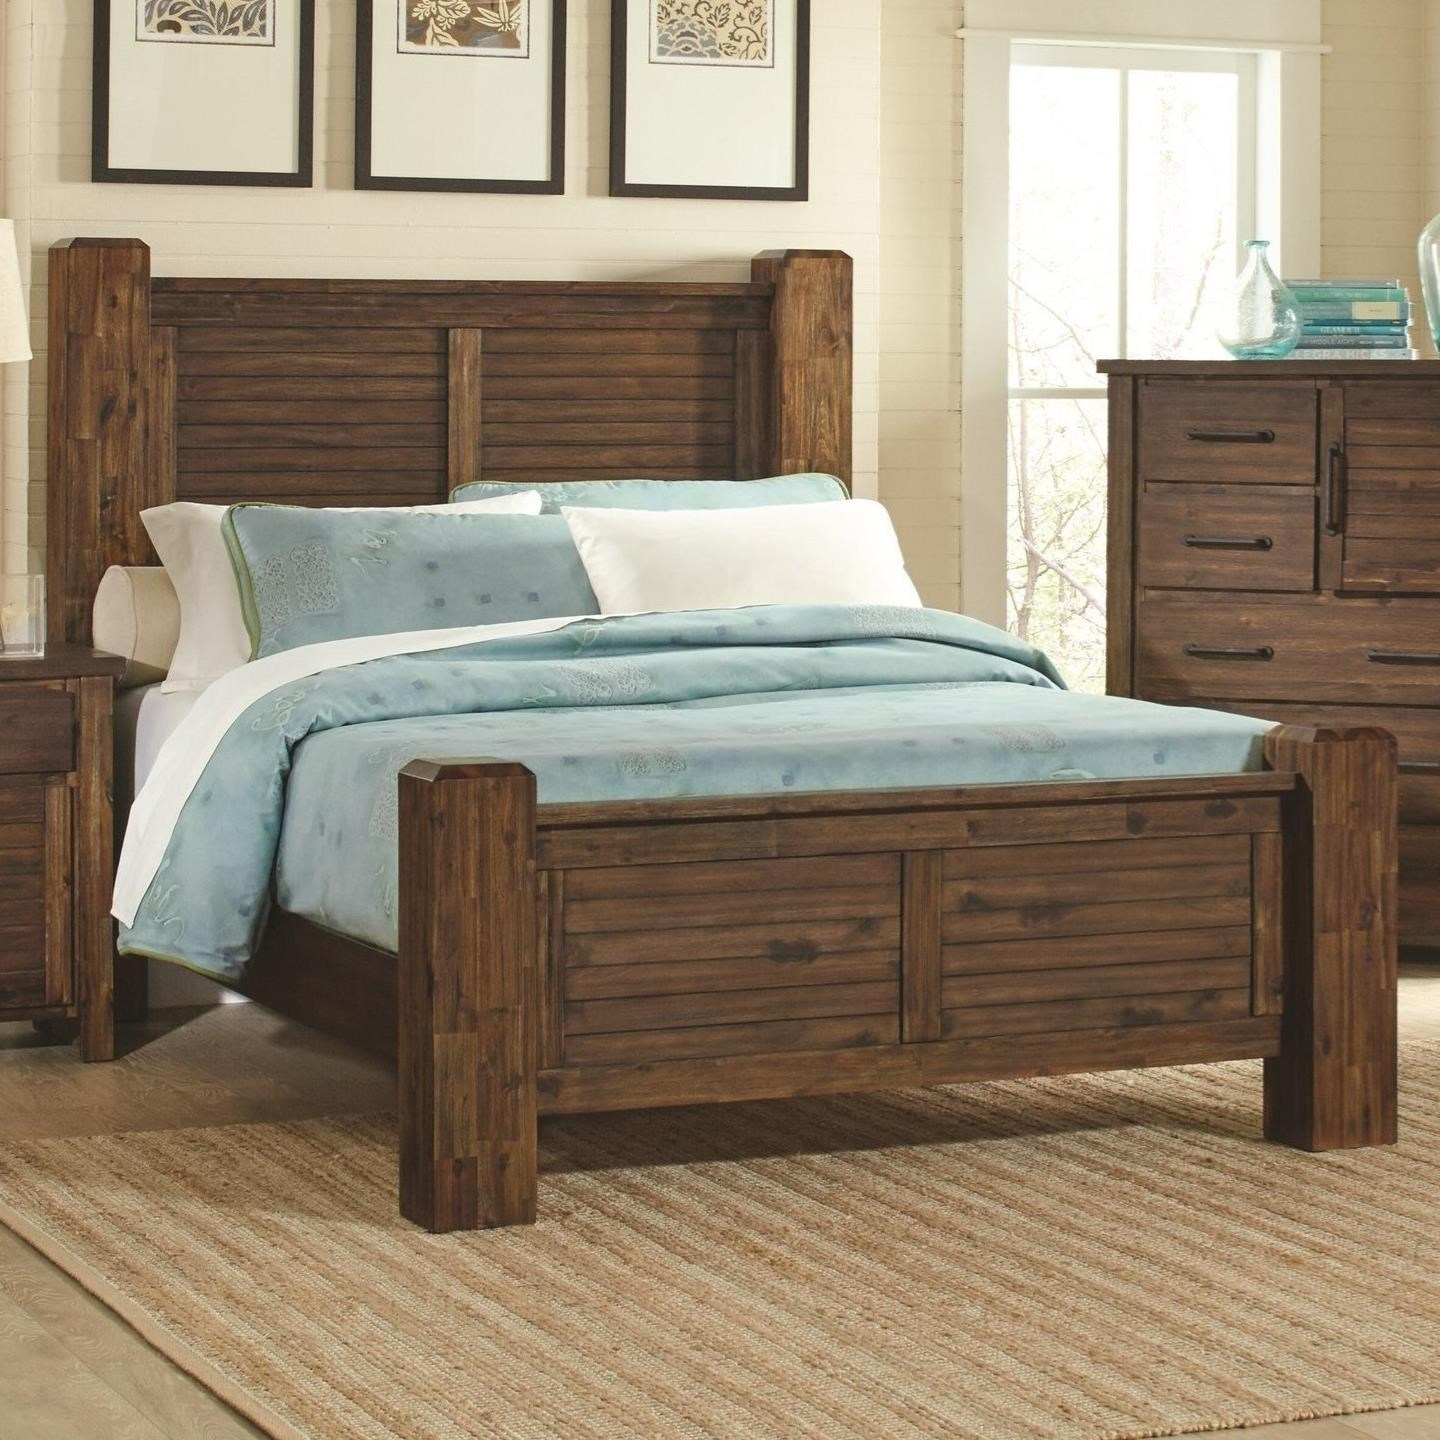 King Bed With Posts Coaster Sutter Creek King Bed With Block Posts Adcock Furniture